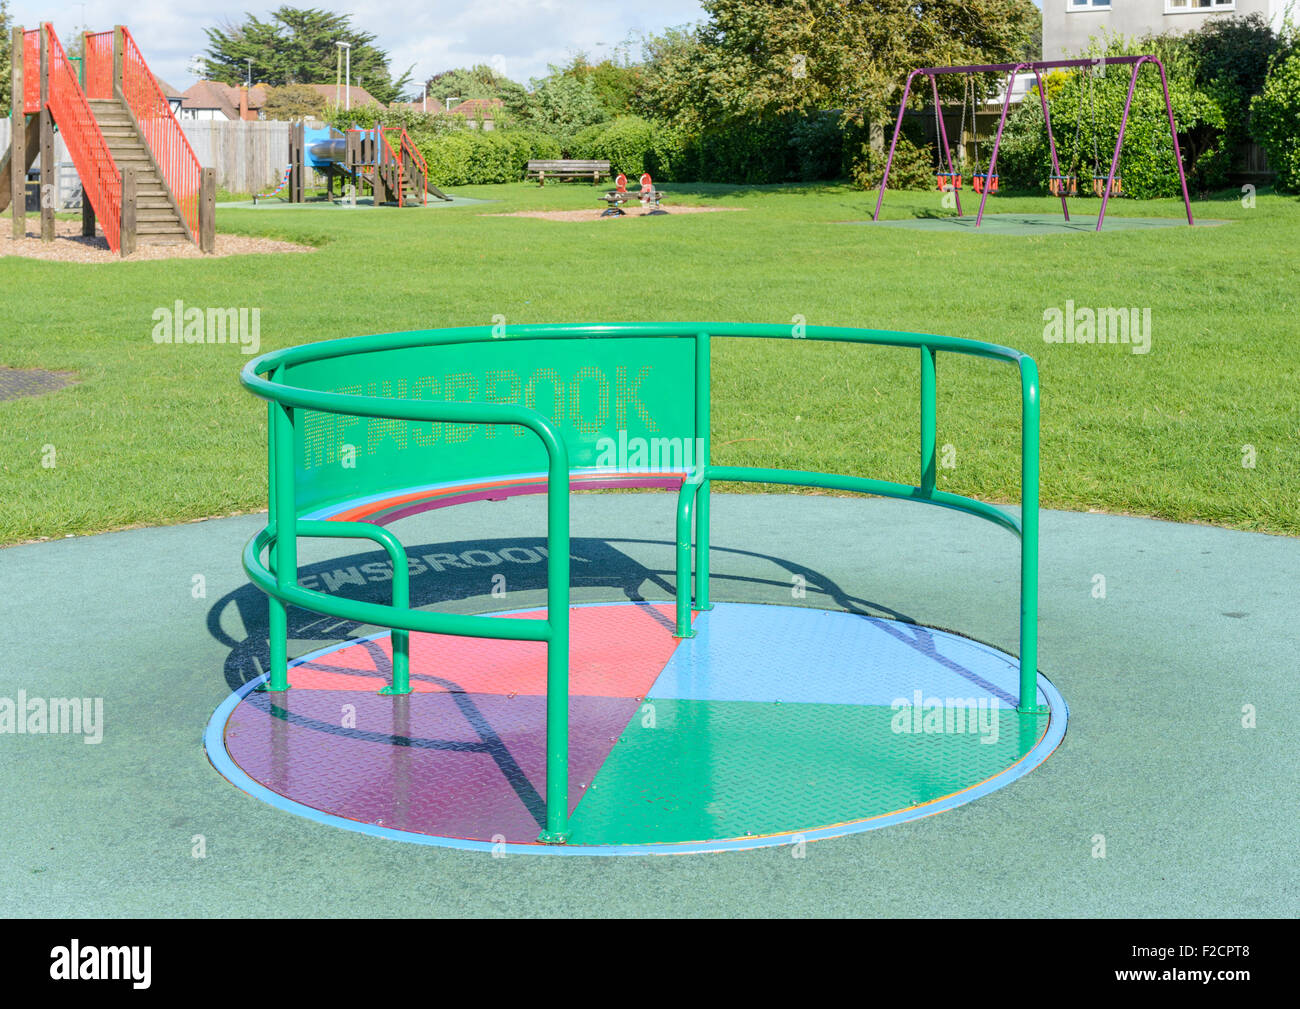 Spiro Whirl Roundabout in the playground in a park. - Stock Image